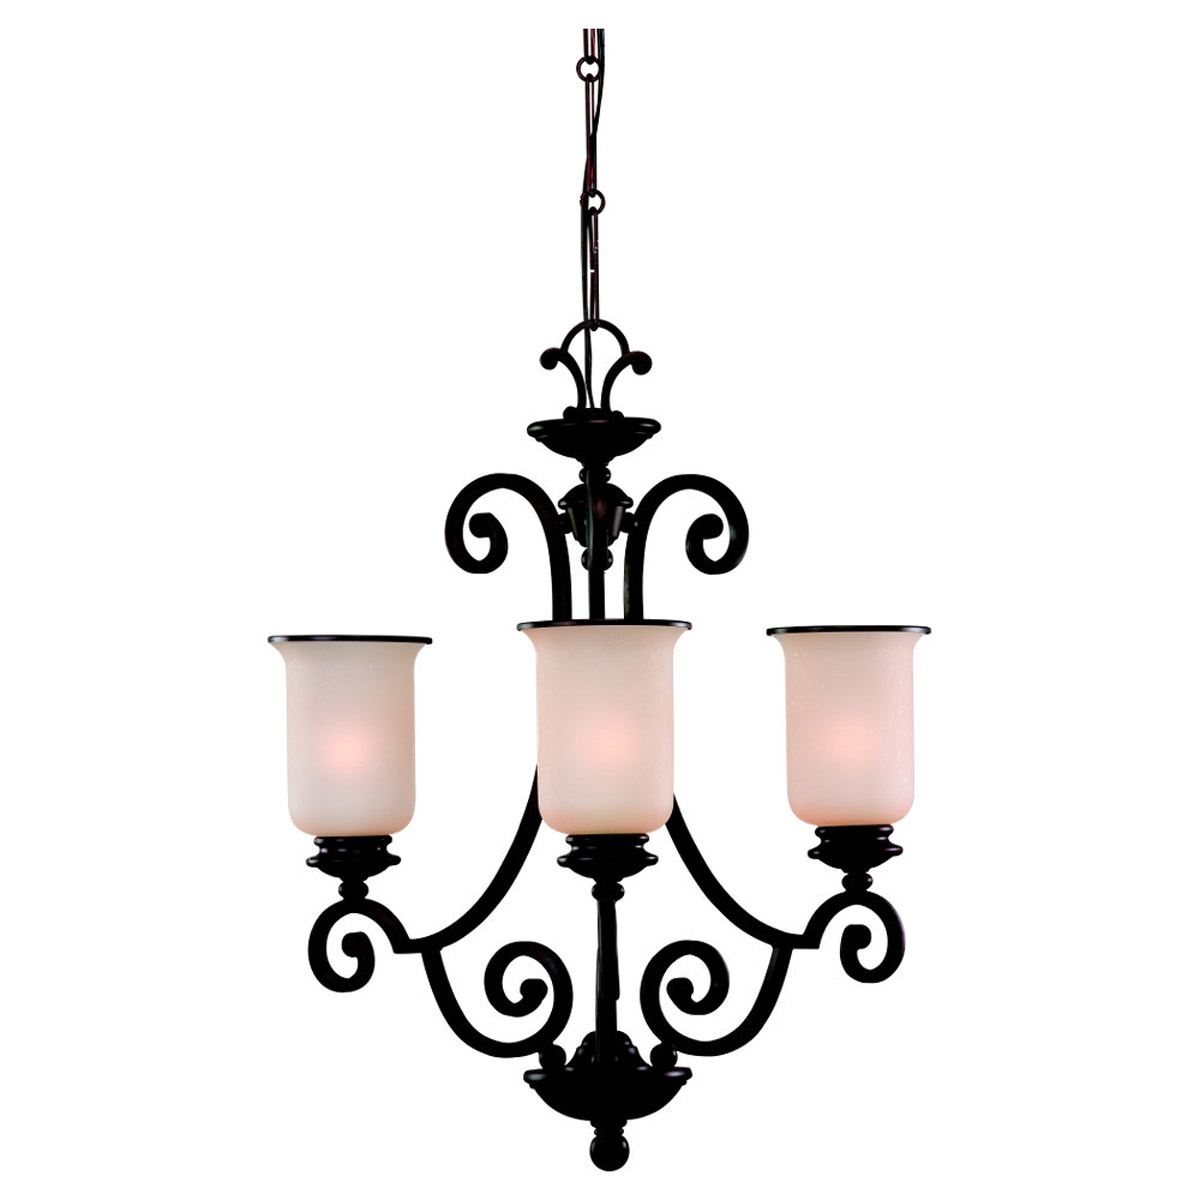 Sea Gull Lighting Acadia 3 Light Chandelier in Misted Bronze 31145BLE-814